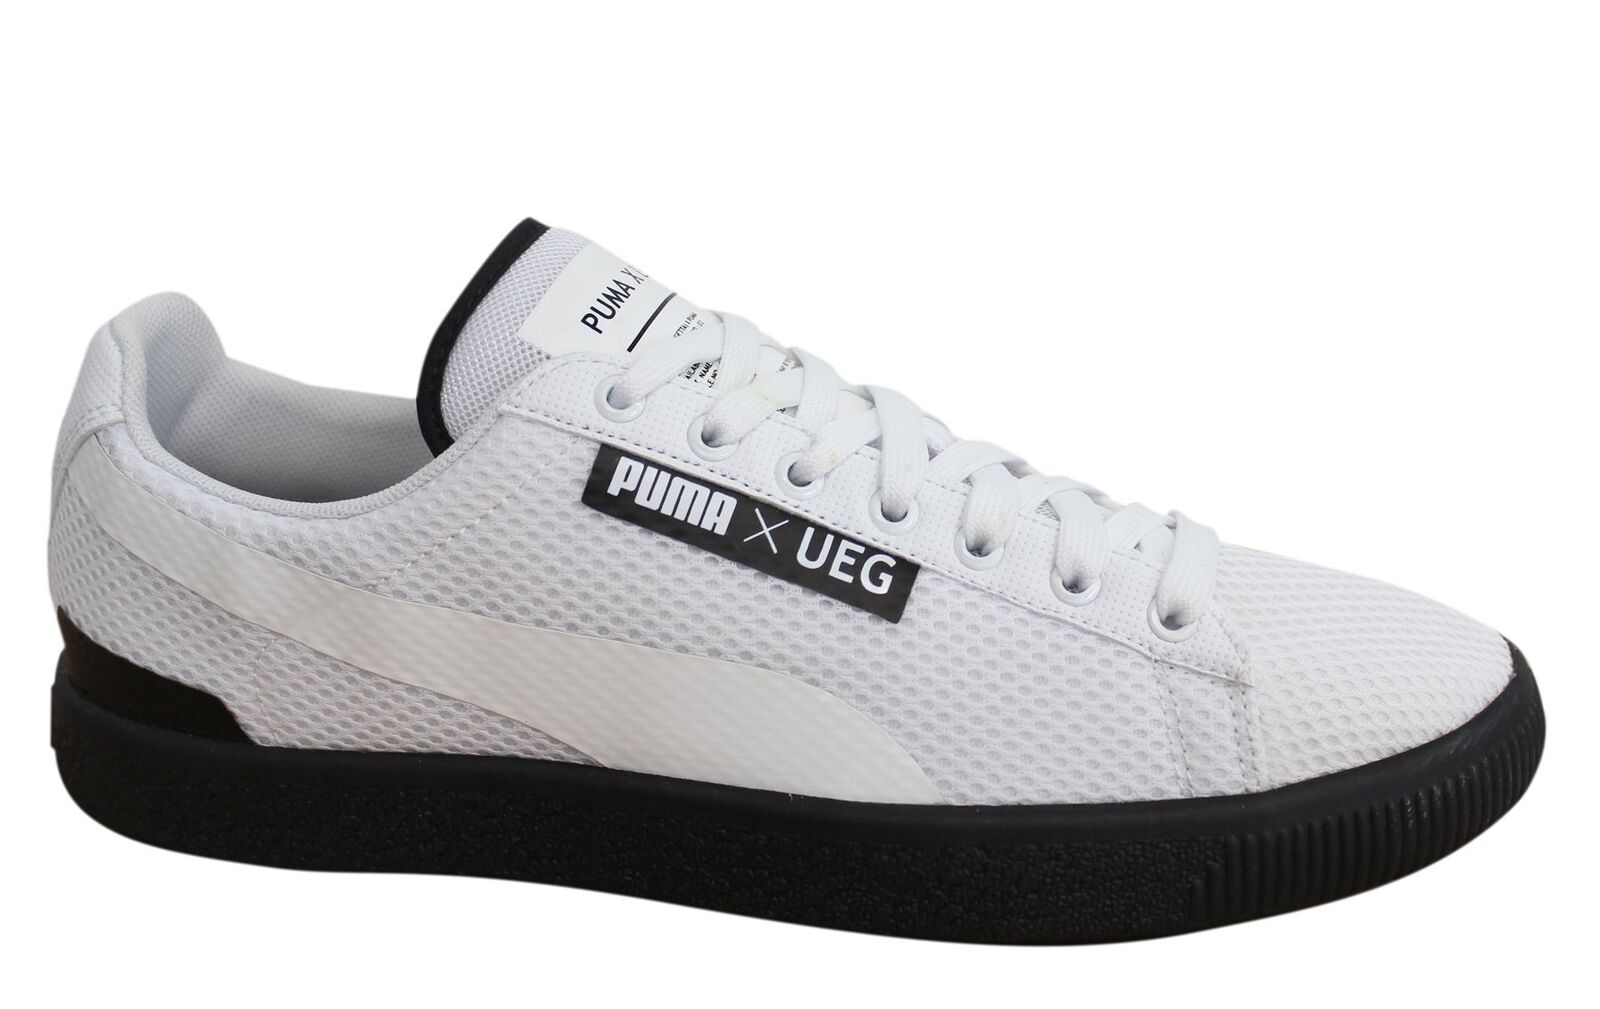 Puma Court x UEG White Black Textile Synthetic Mens Trainers 361496 02 D80